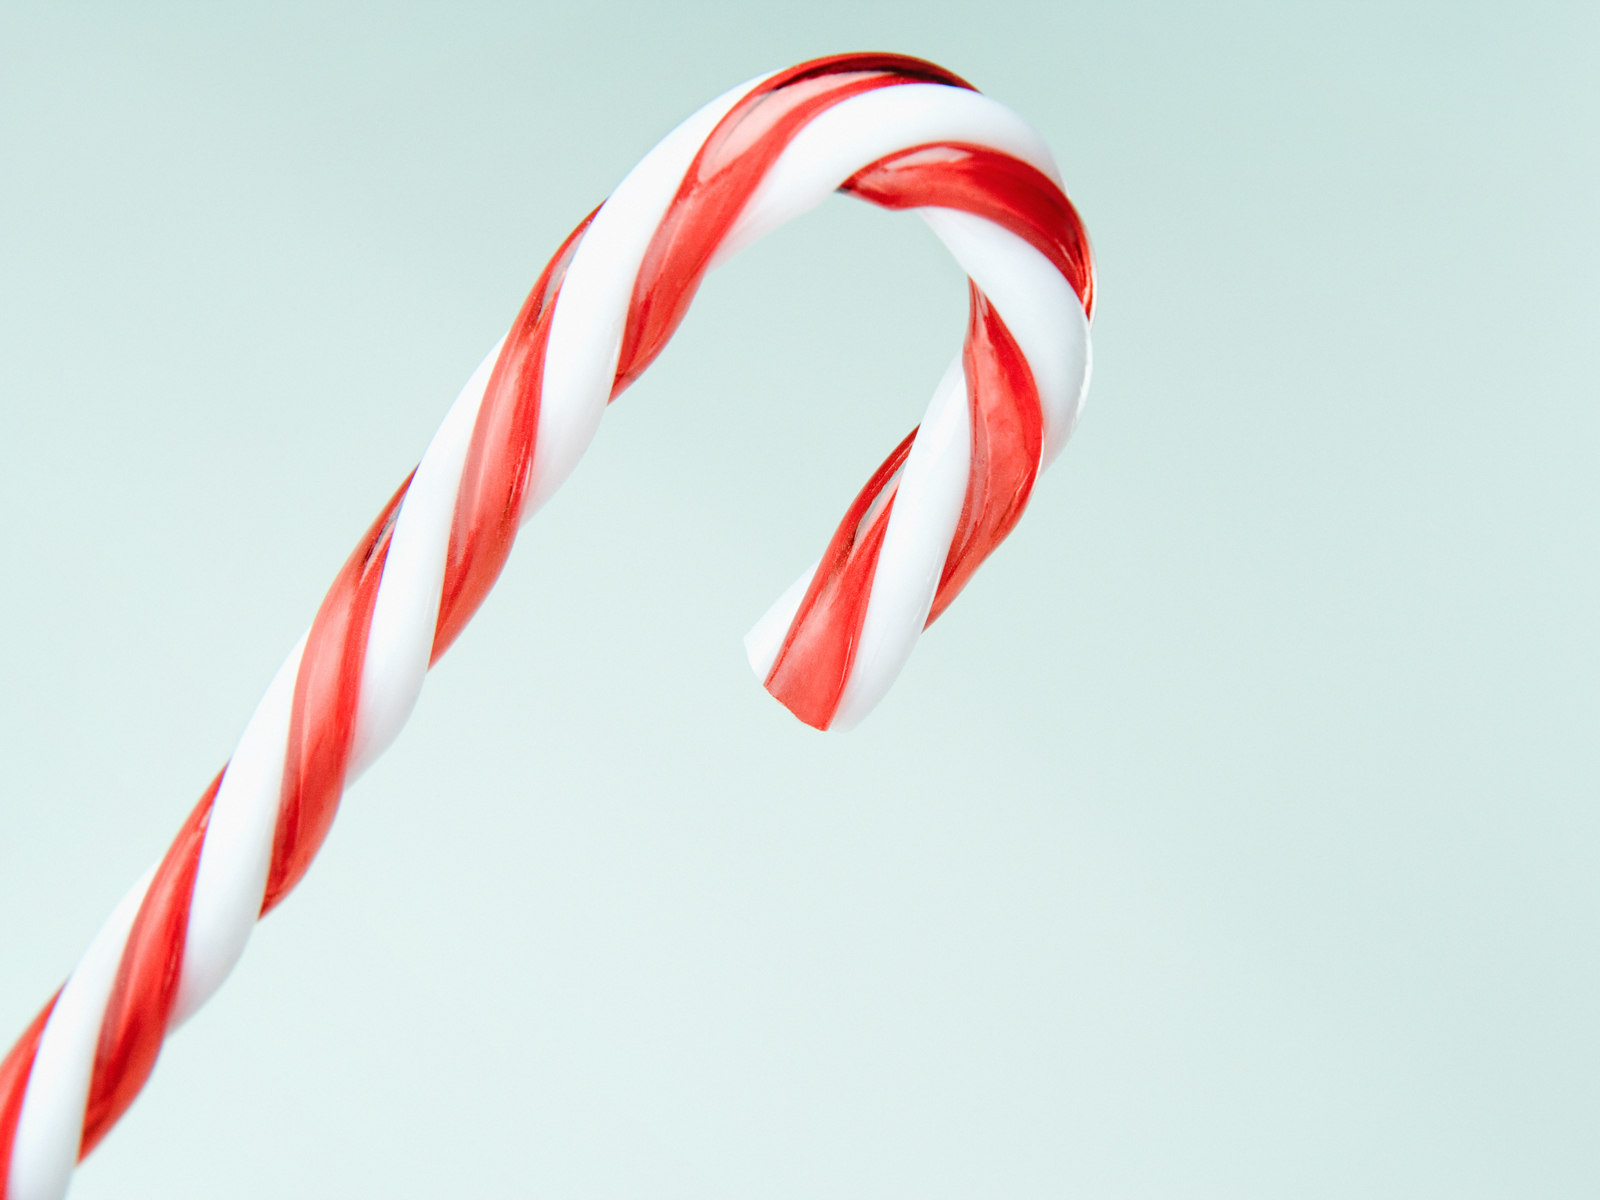 christmas candy cane backgrounds for powerpoint 1600x1200